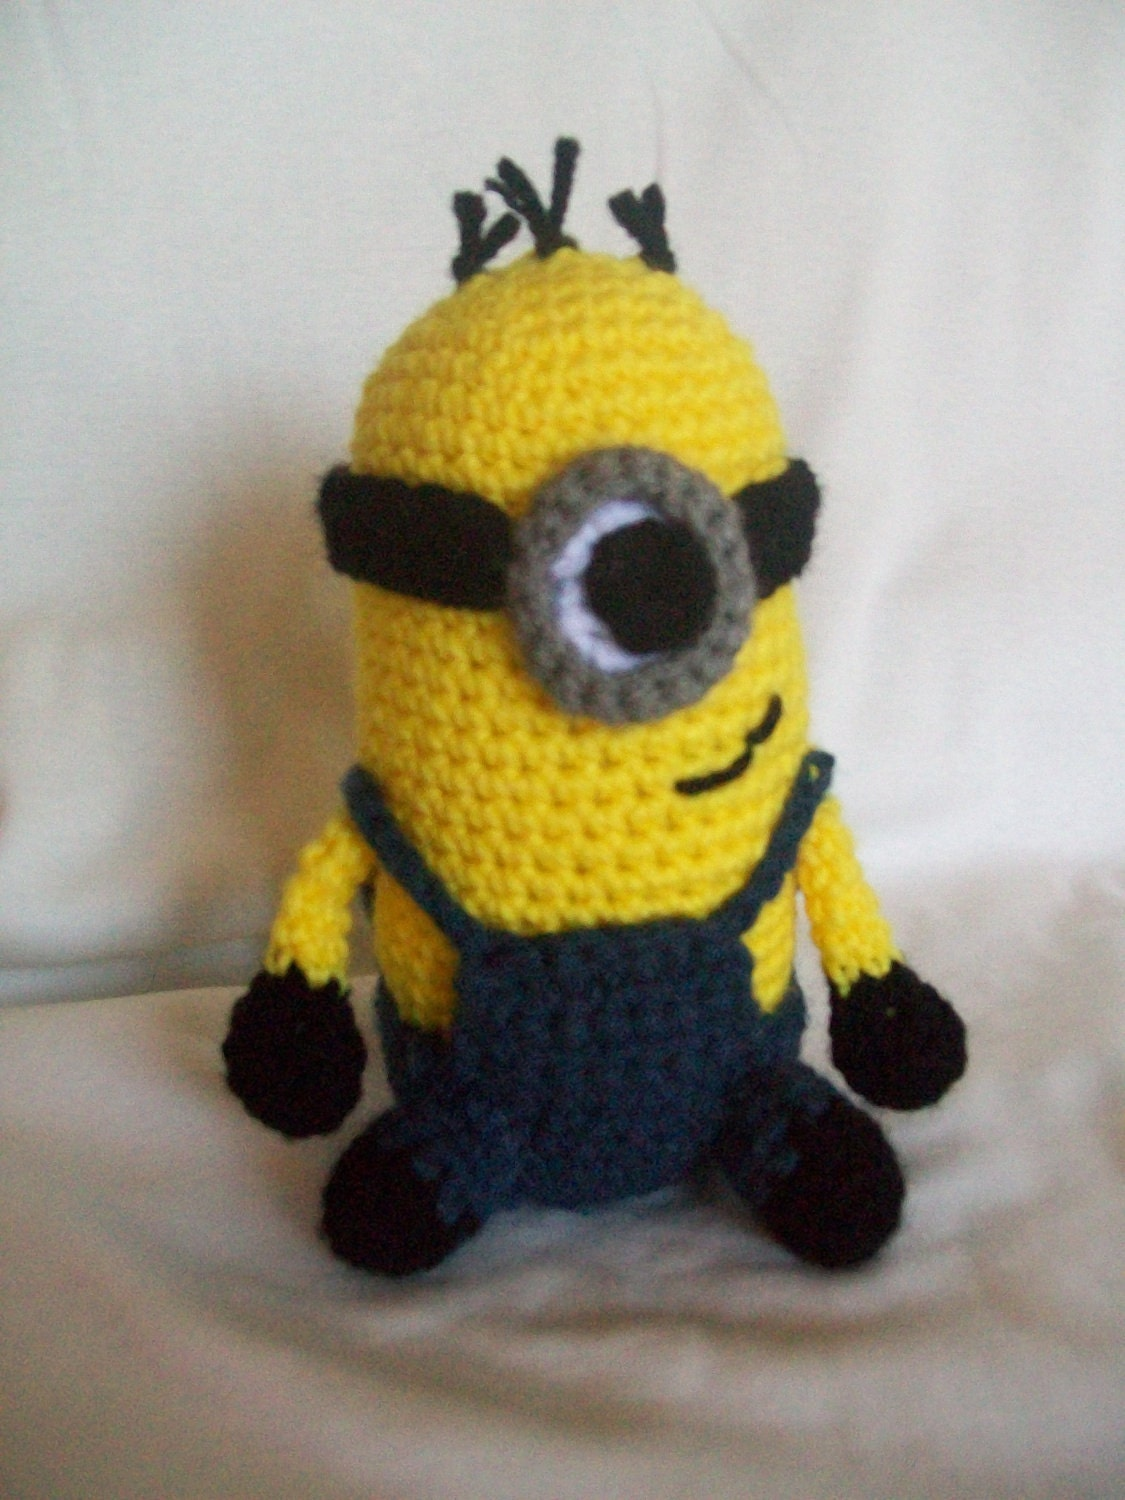 Amigurumi Minion Etsy : Minion Amigurumi by WhisperSweetJoy on Etsy